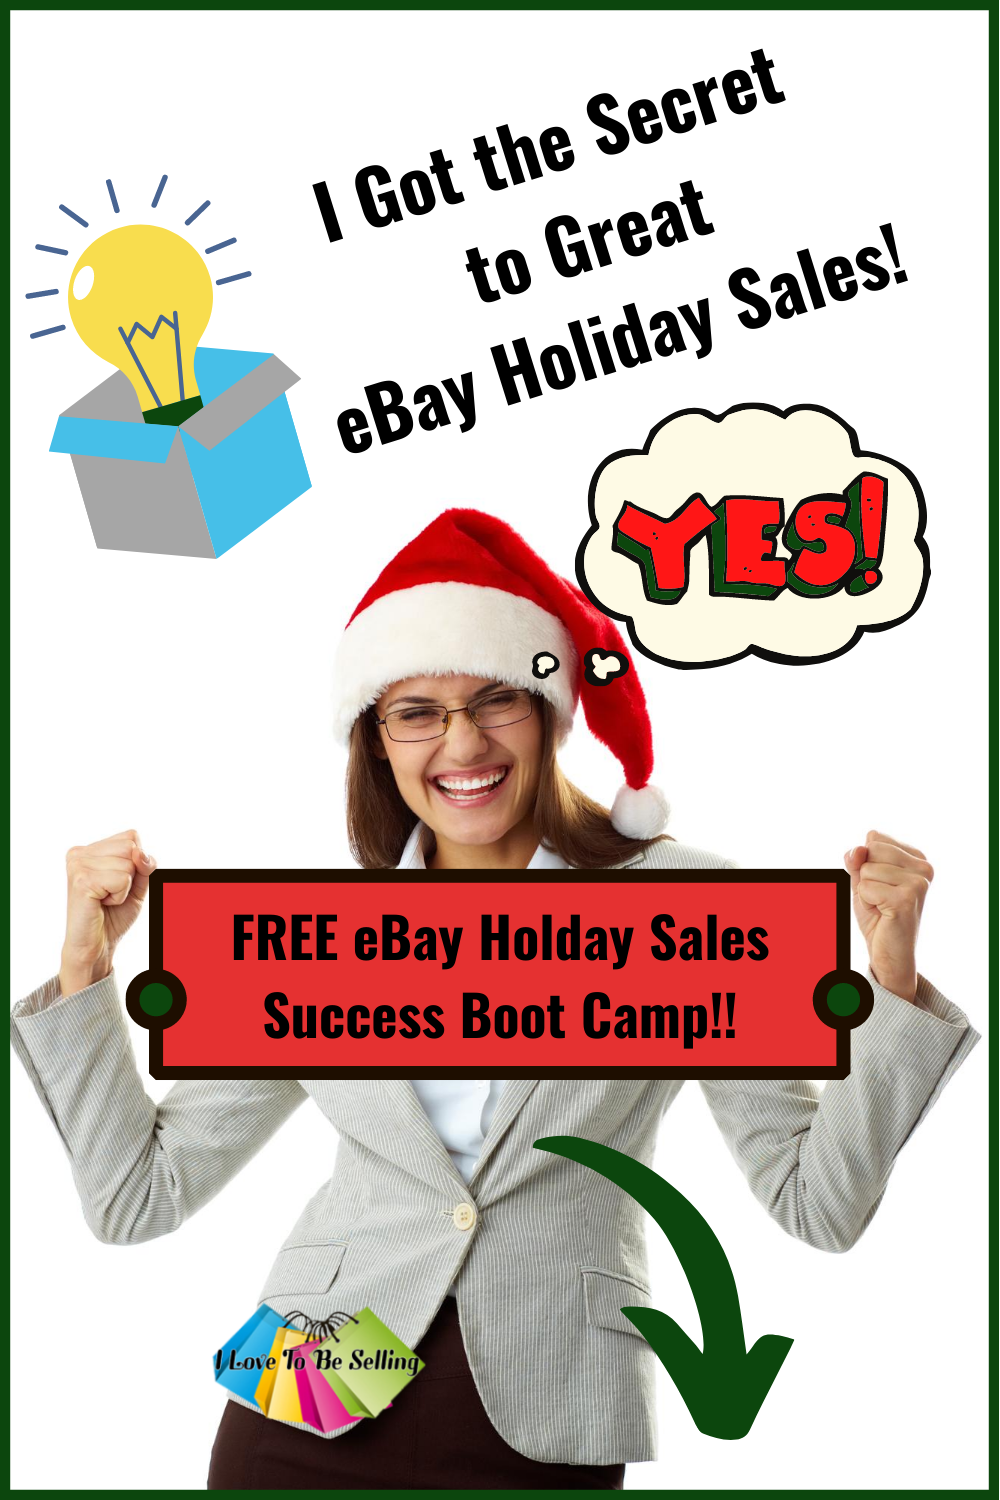 The Secret To Great Ebay Holiday Sales 2020 In 2020 Holiday Sales Ebay Selling Tips Work Smarter